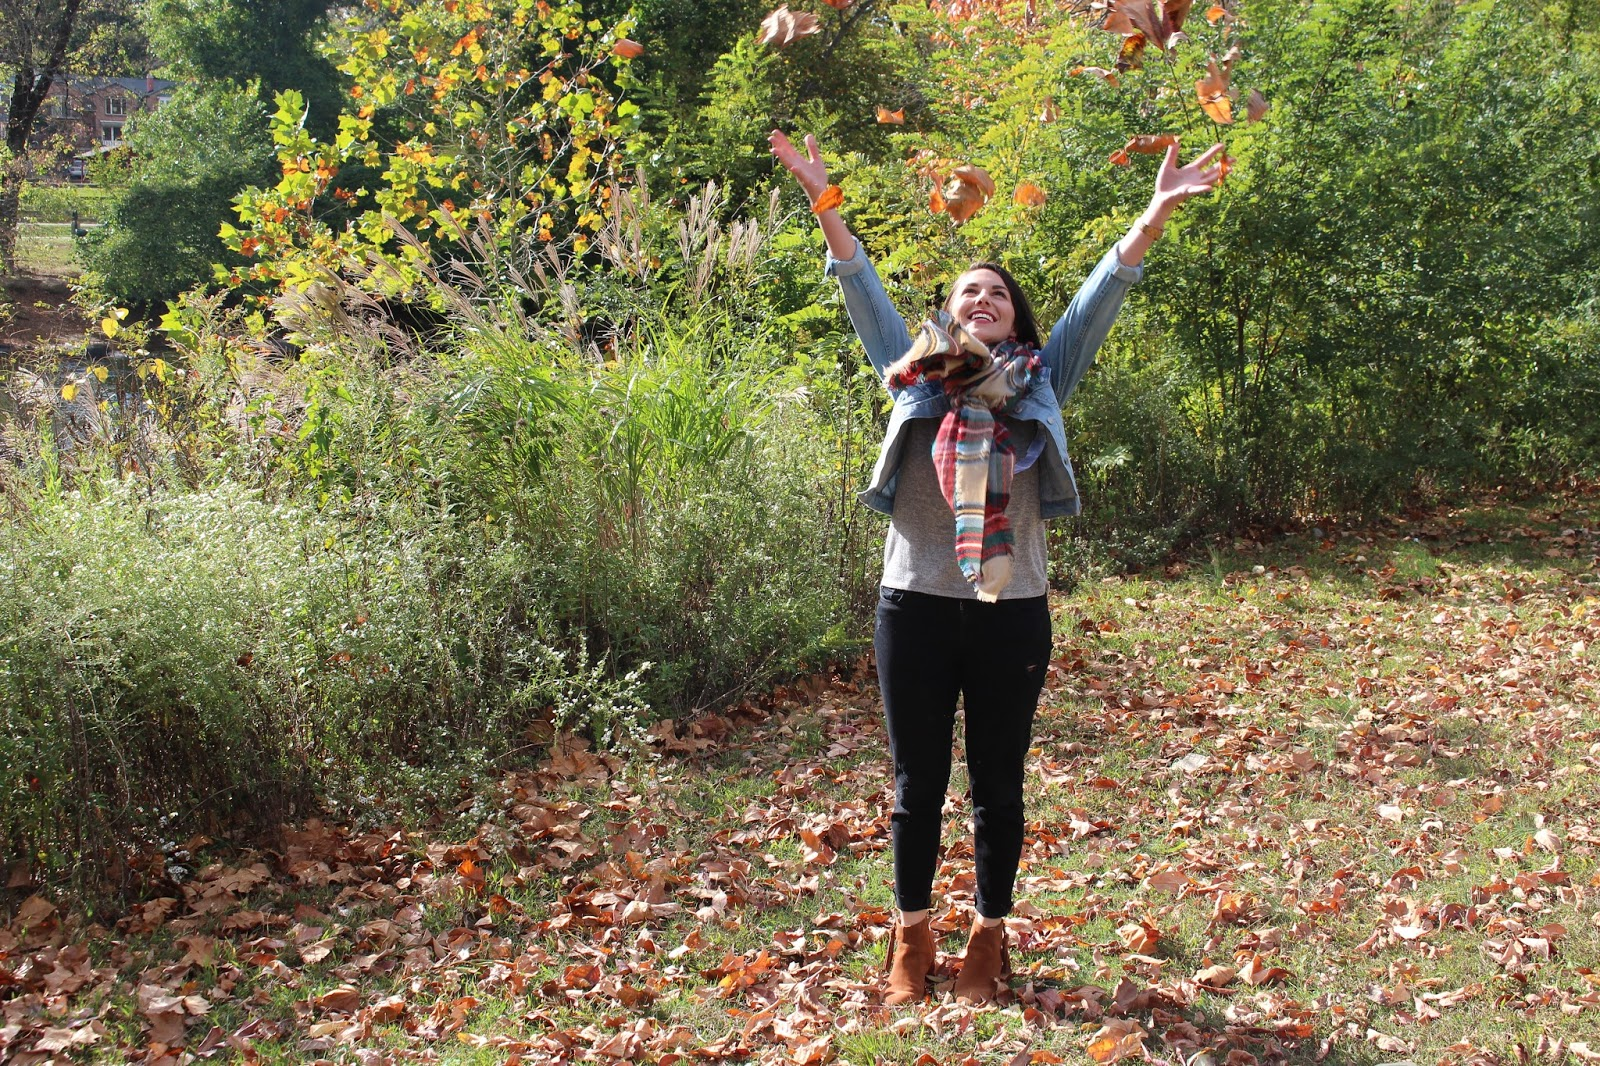 This is a picture of me in fall attire throwing leaving into the air. This was shot in Wilmington, Delaware.